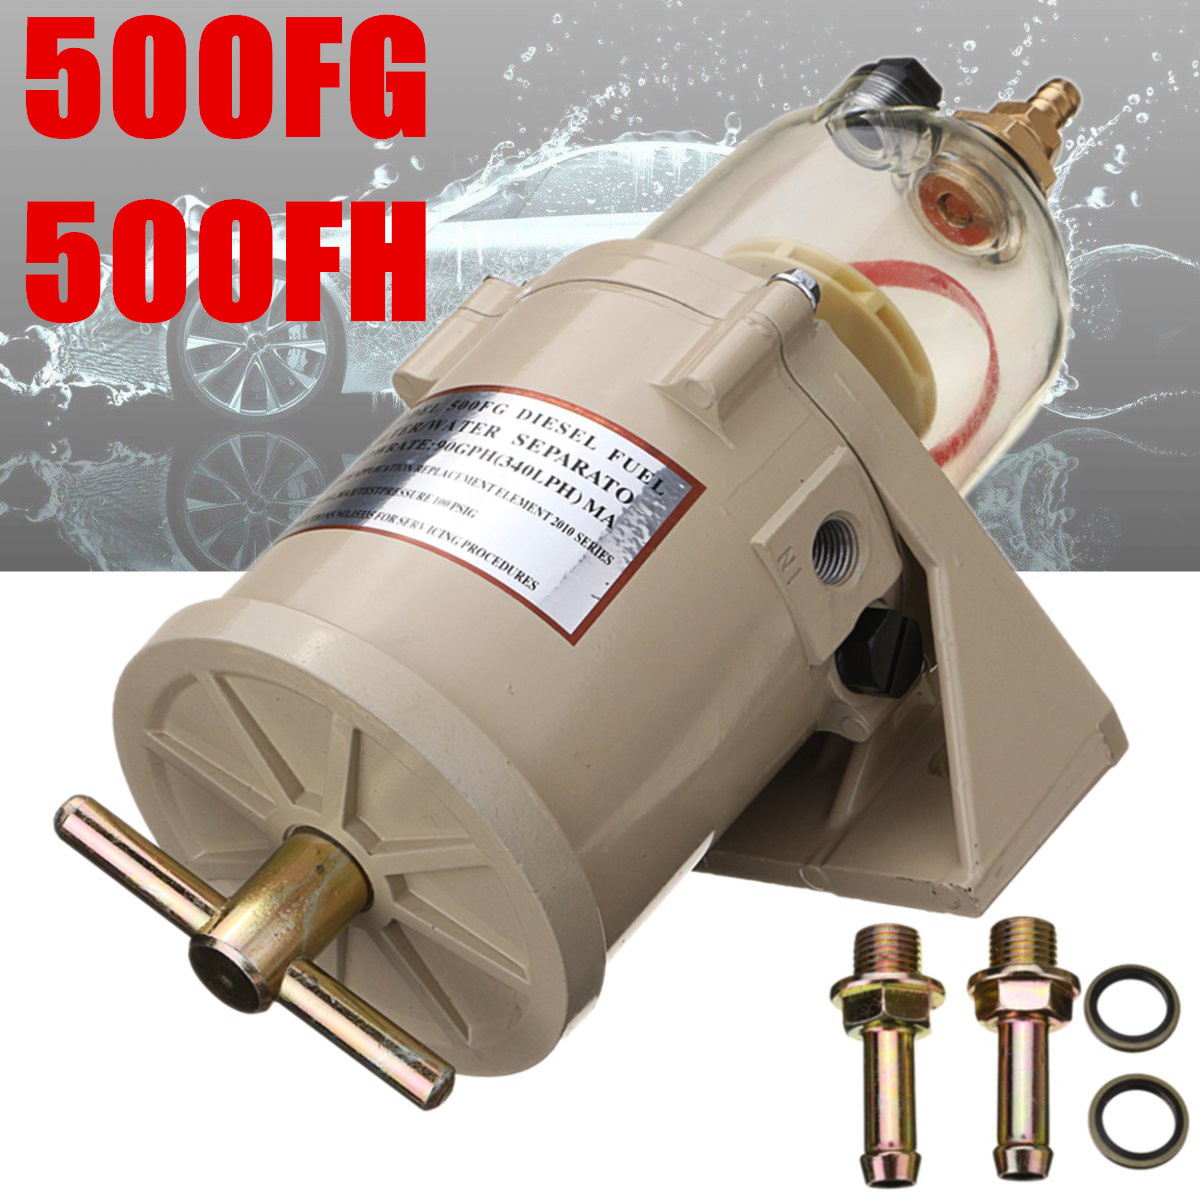 New 500FG 500FH Diesel-Marine Boat Filter / Water Separator fuel filter water separator fit for diesel-engineNew 500FG 500FH Diesel-Marine Boat Filter / Water Separator fuel filter water separator fit for diesel-engine